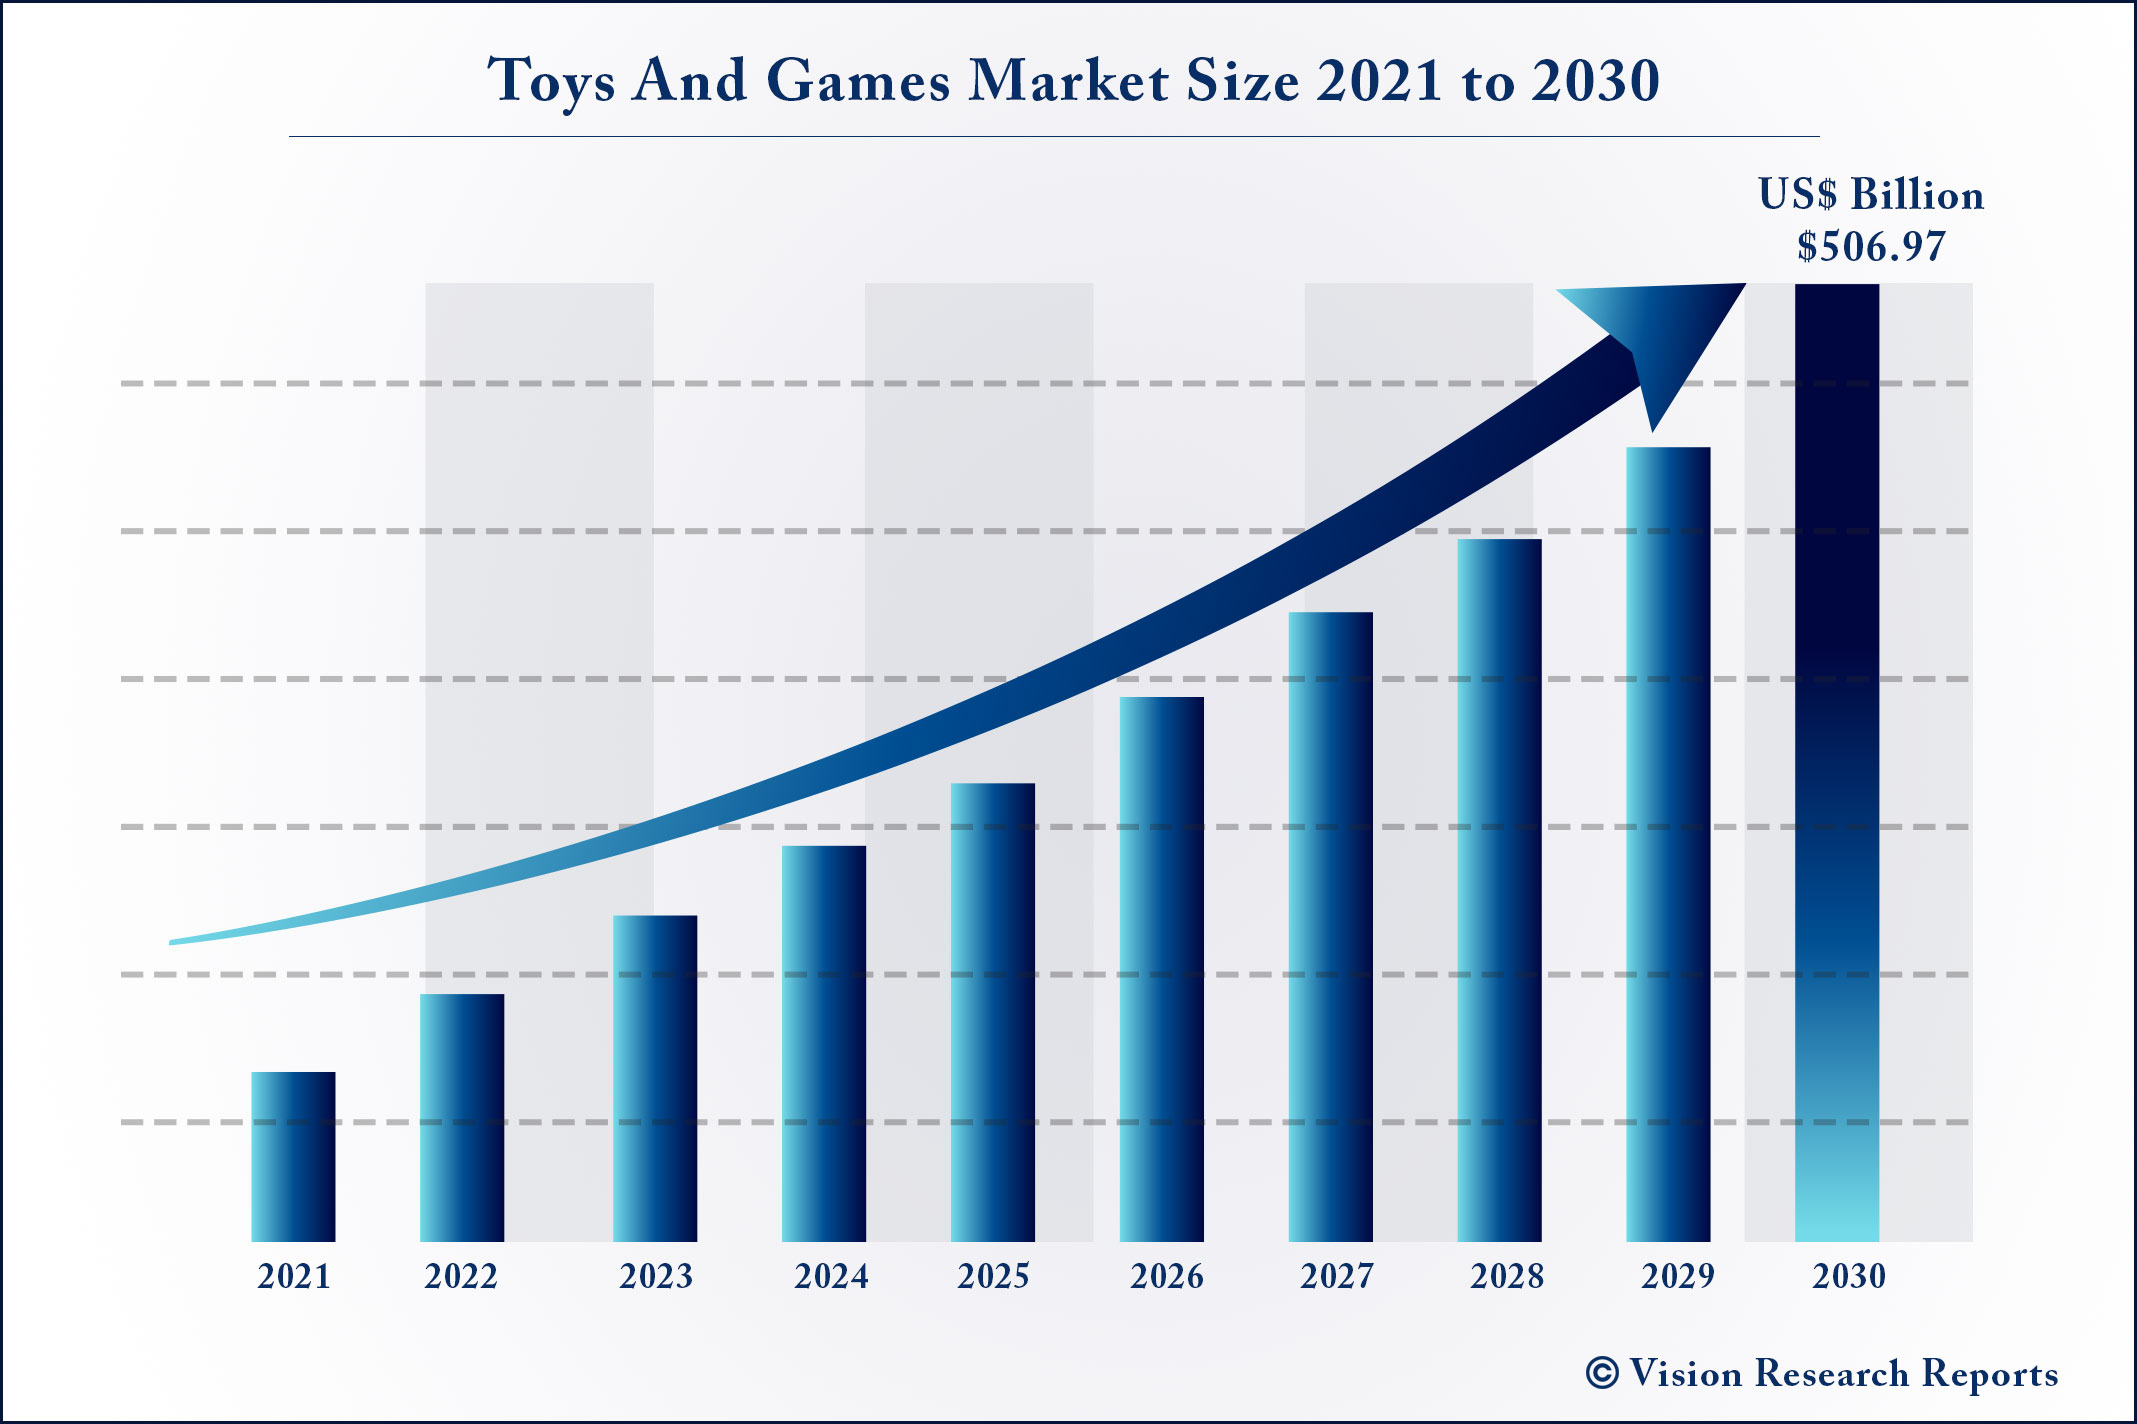 Toys And Games Market Size 2021 to 2030